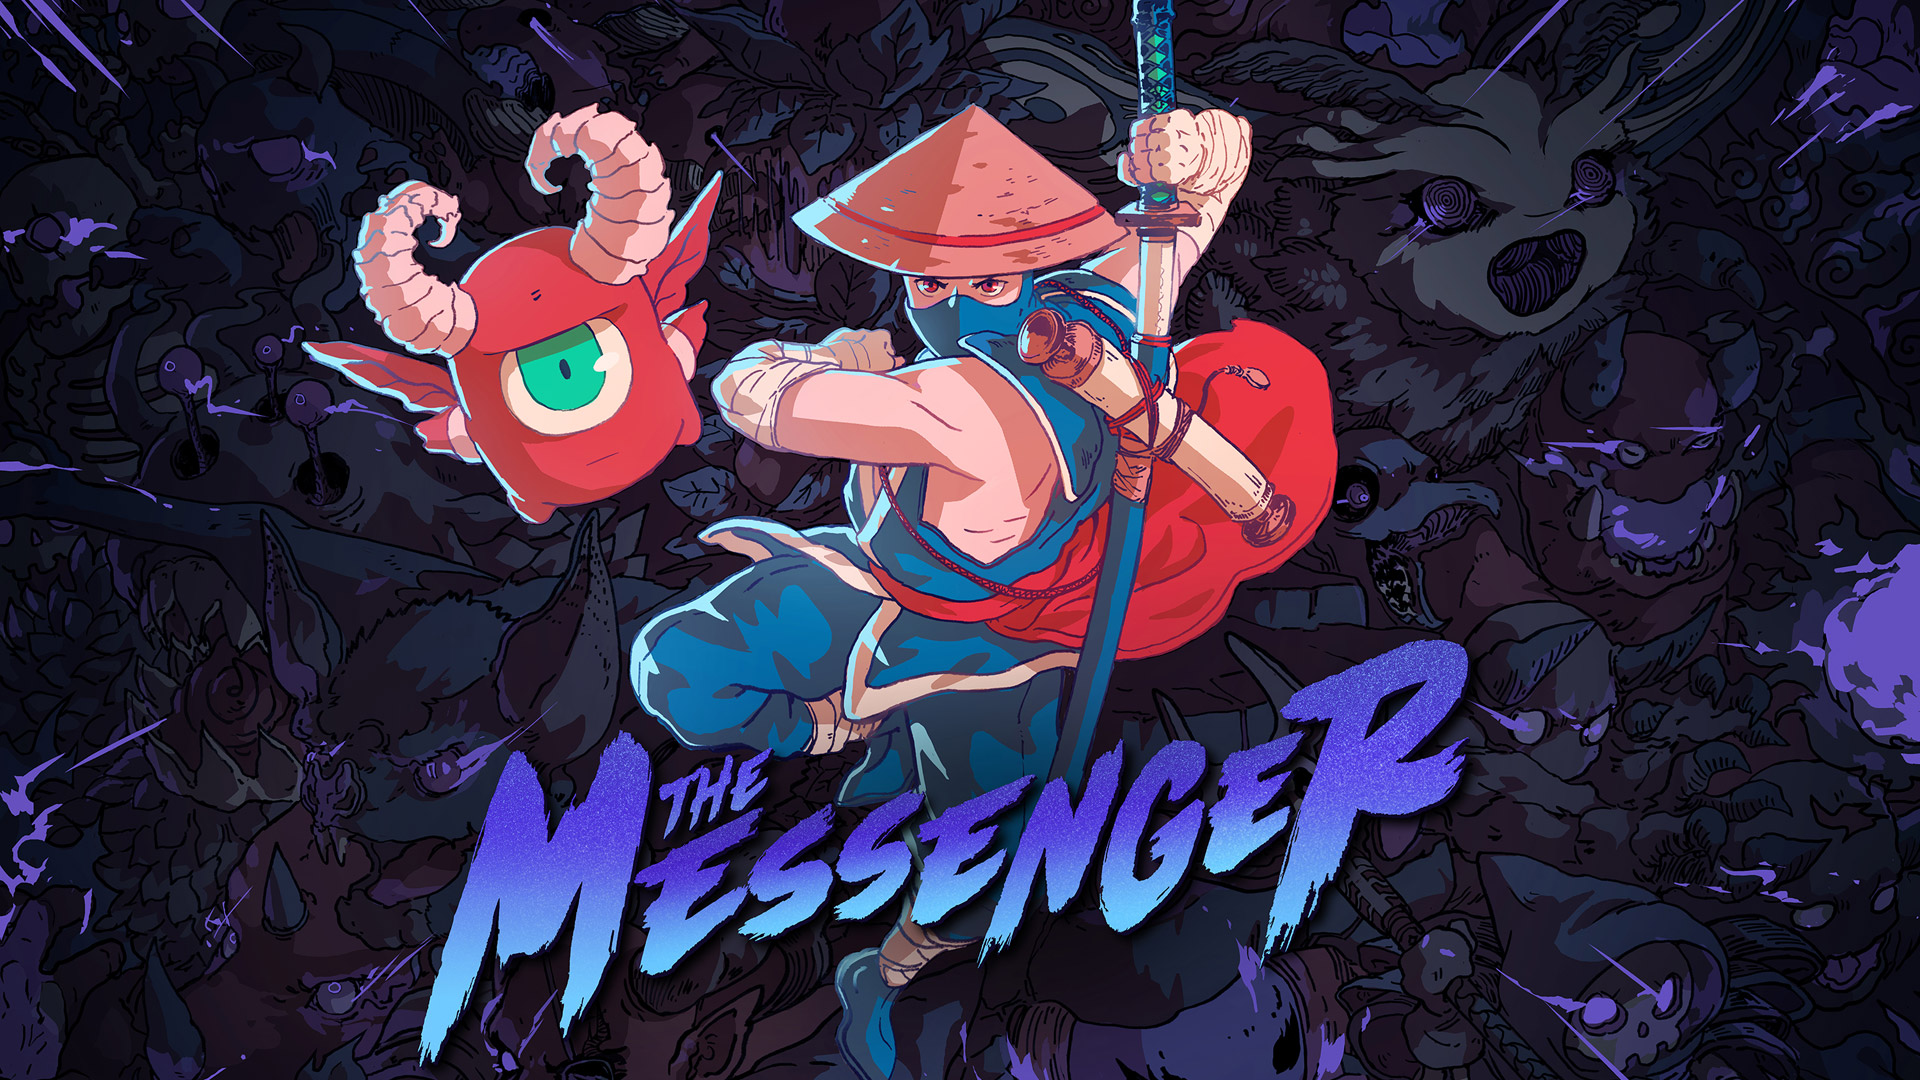 Free The Messenger Wallpaper in 1920x1080